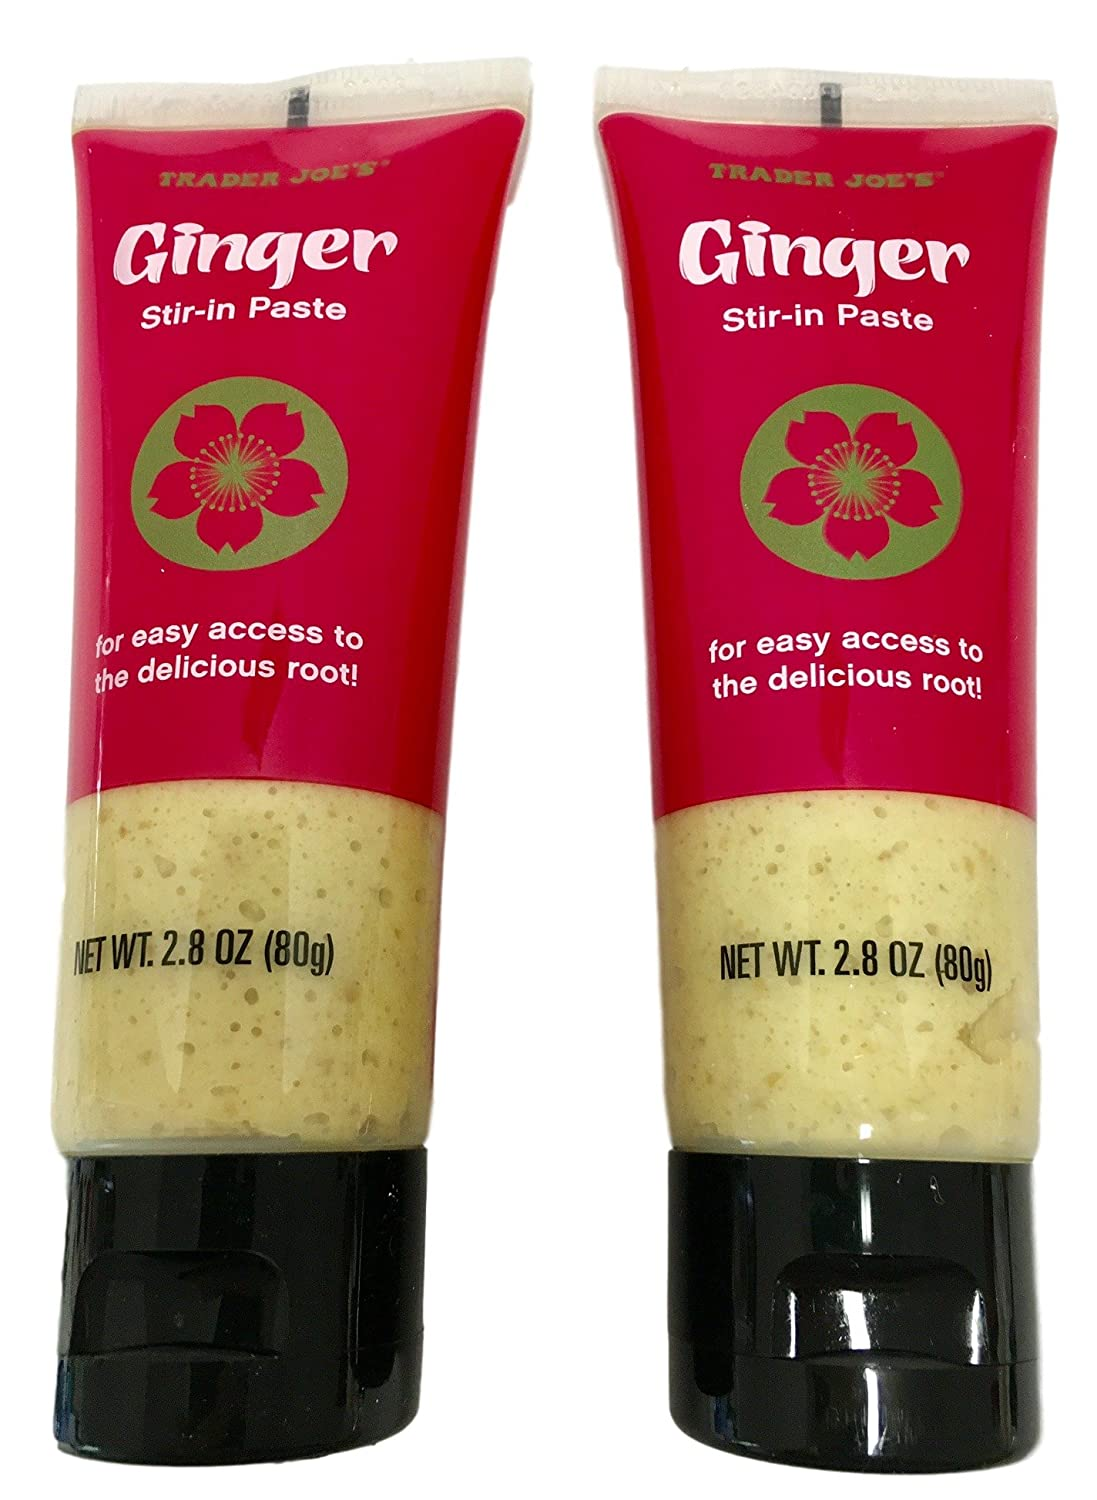 Trader Joes Ginger Stir-In Paste, 2 tubes, 2.8 Oz. Each - Asian, Gourmet, Specialty Cooks Seasoning Root